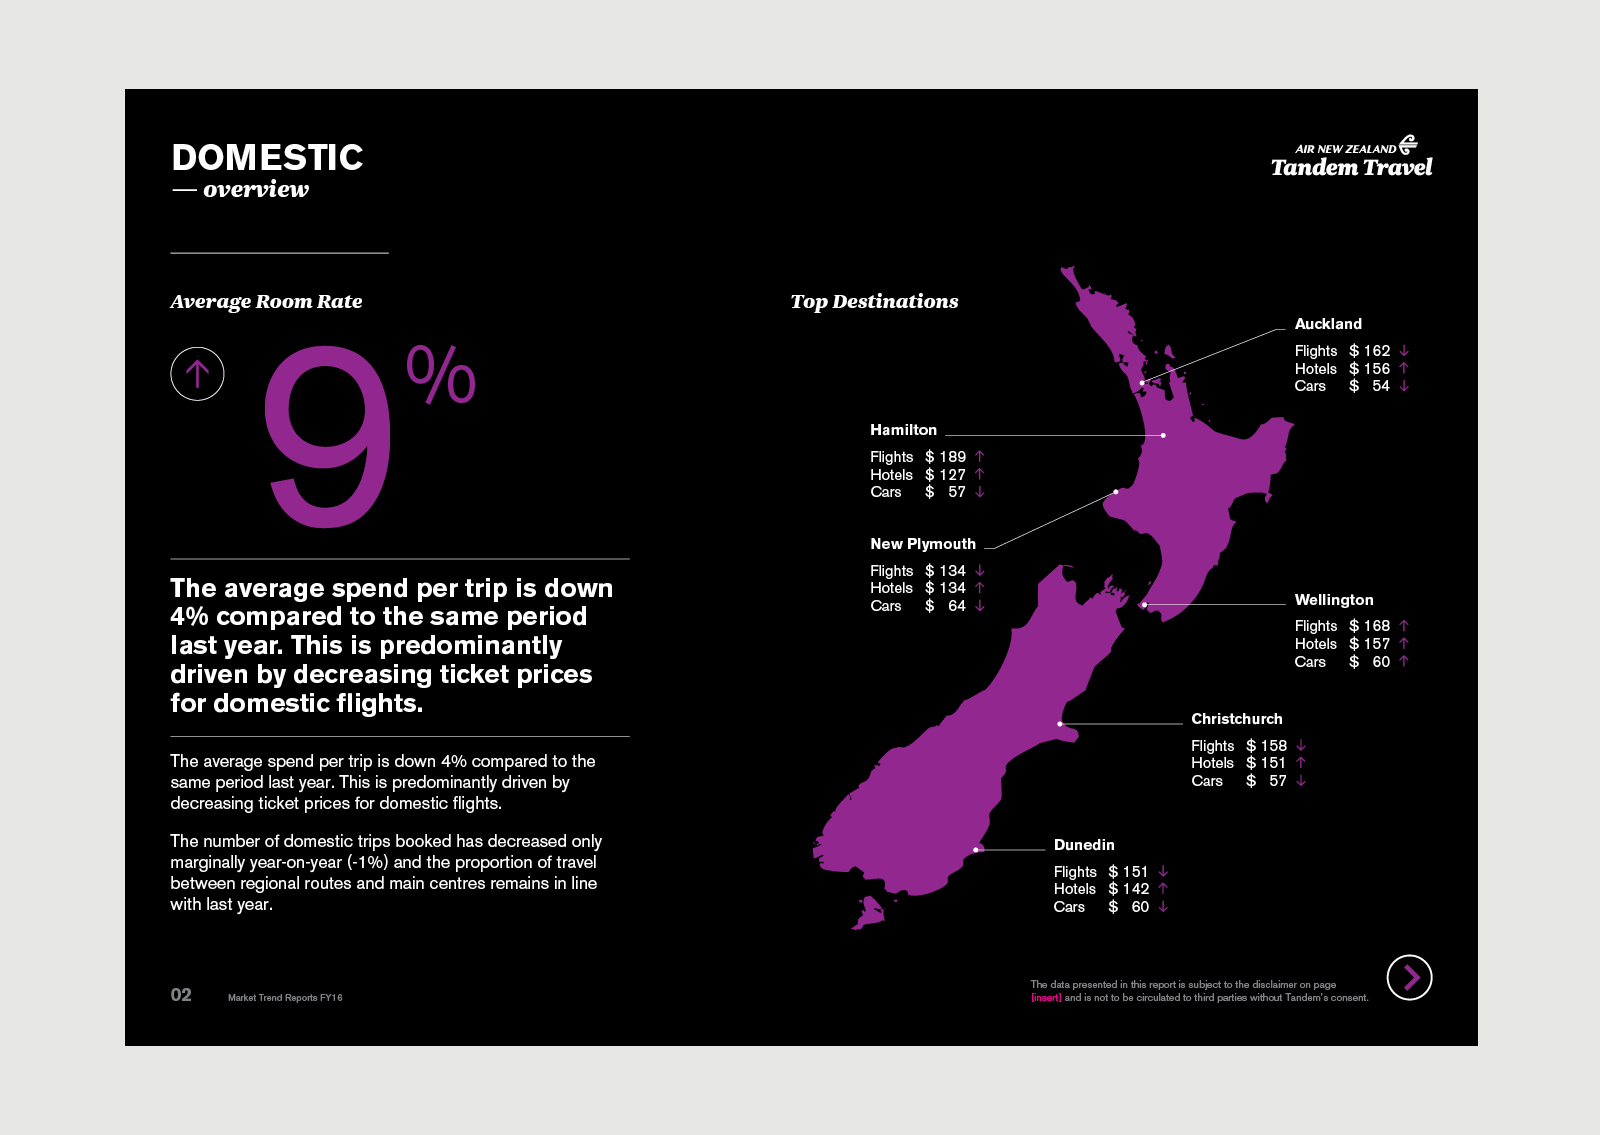 AirNZ Tandem Travel Online Report – Domestic Overview showing data visualisation with black and teal colour palette